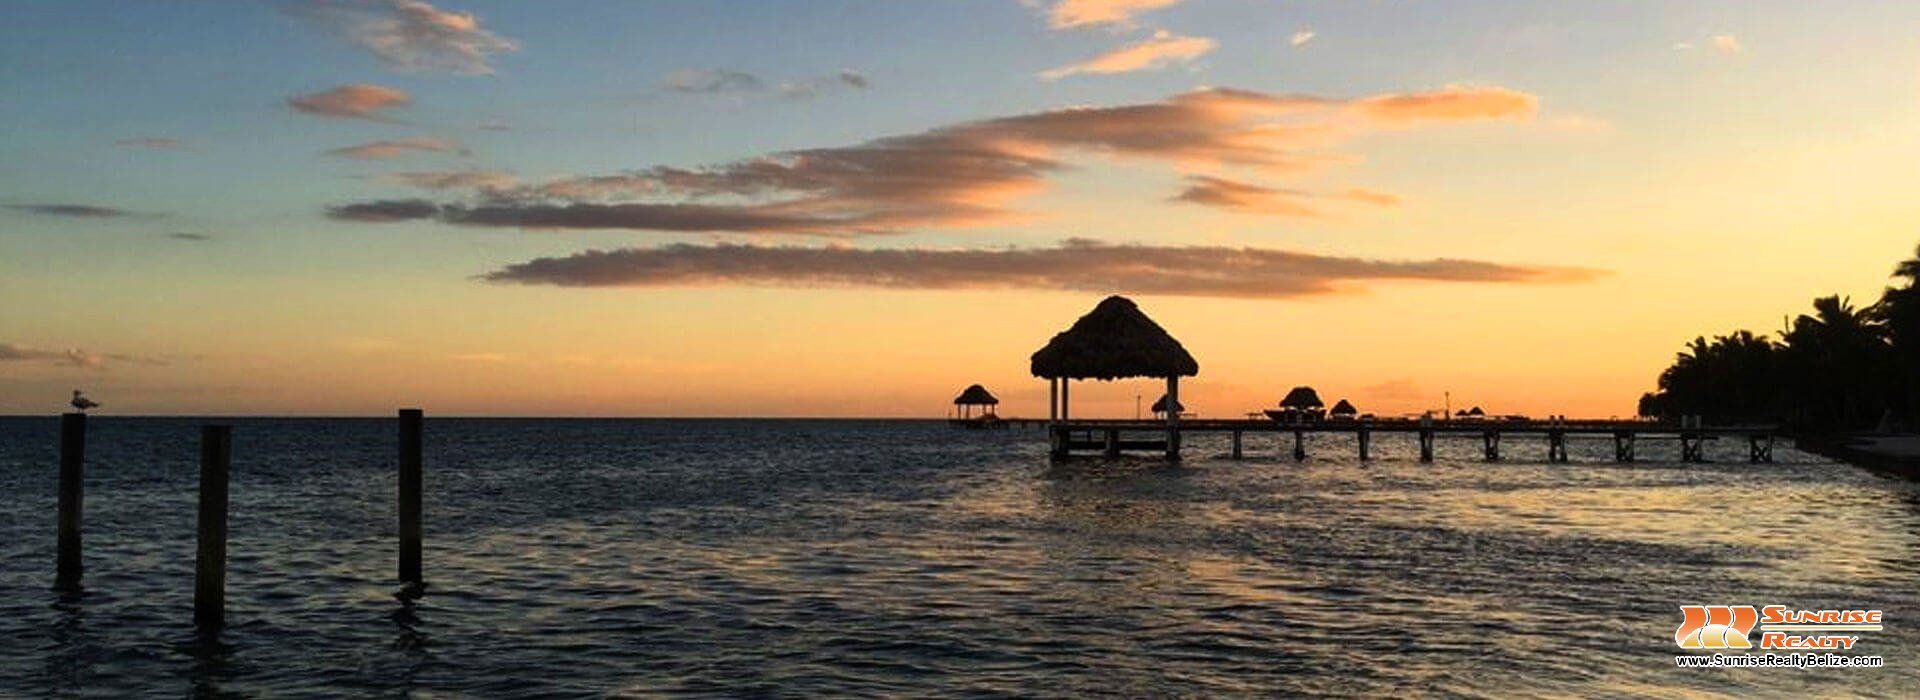 Belize Real Estate Properties For Sale In Ambergris Caye